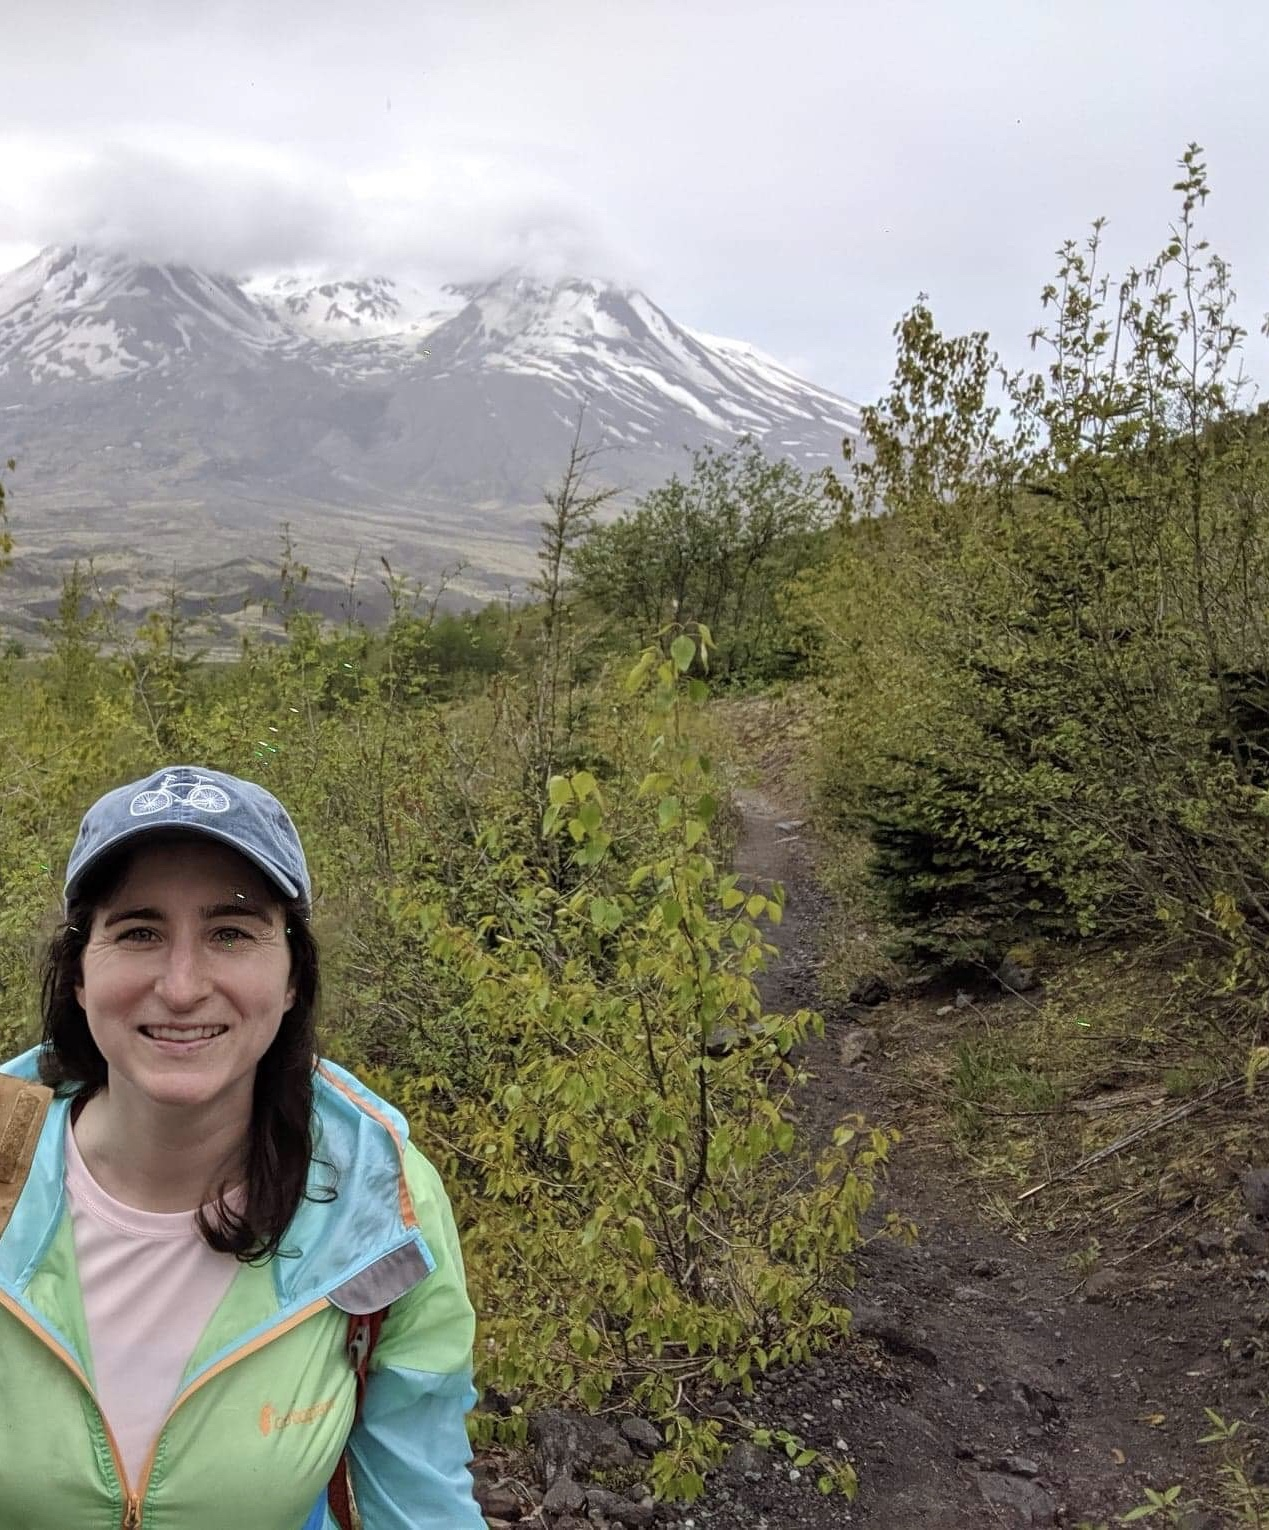 Carly out hiking at Mt. St. Helens